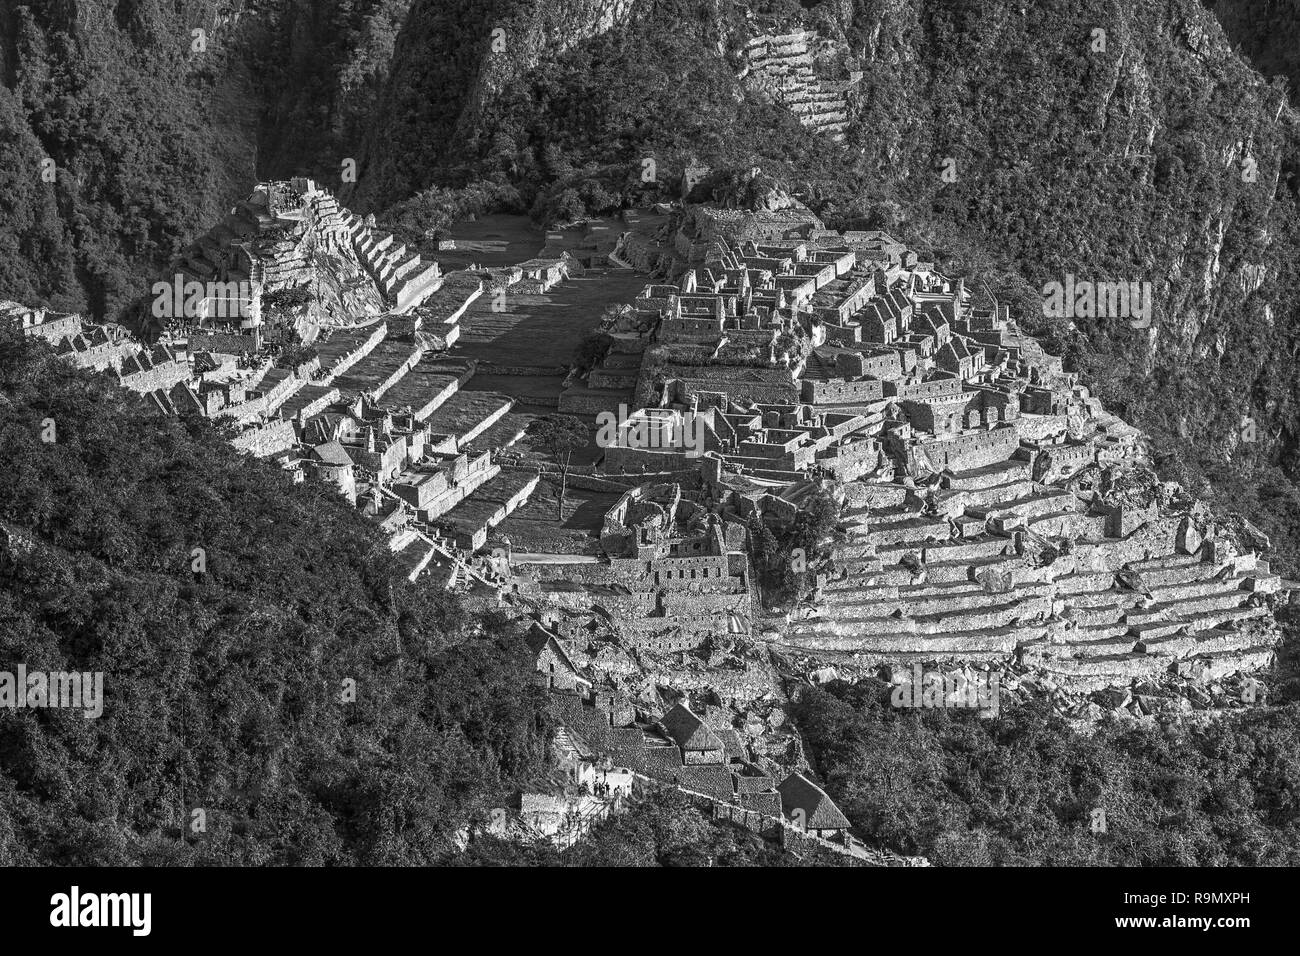 View of the Lost Incan City of Machu Picchu near Cusco, Peru. Machu Picchu is a Peruvian Historical Sanctuary and a UNESCO World Heritage Site. Machu  - Stock Image